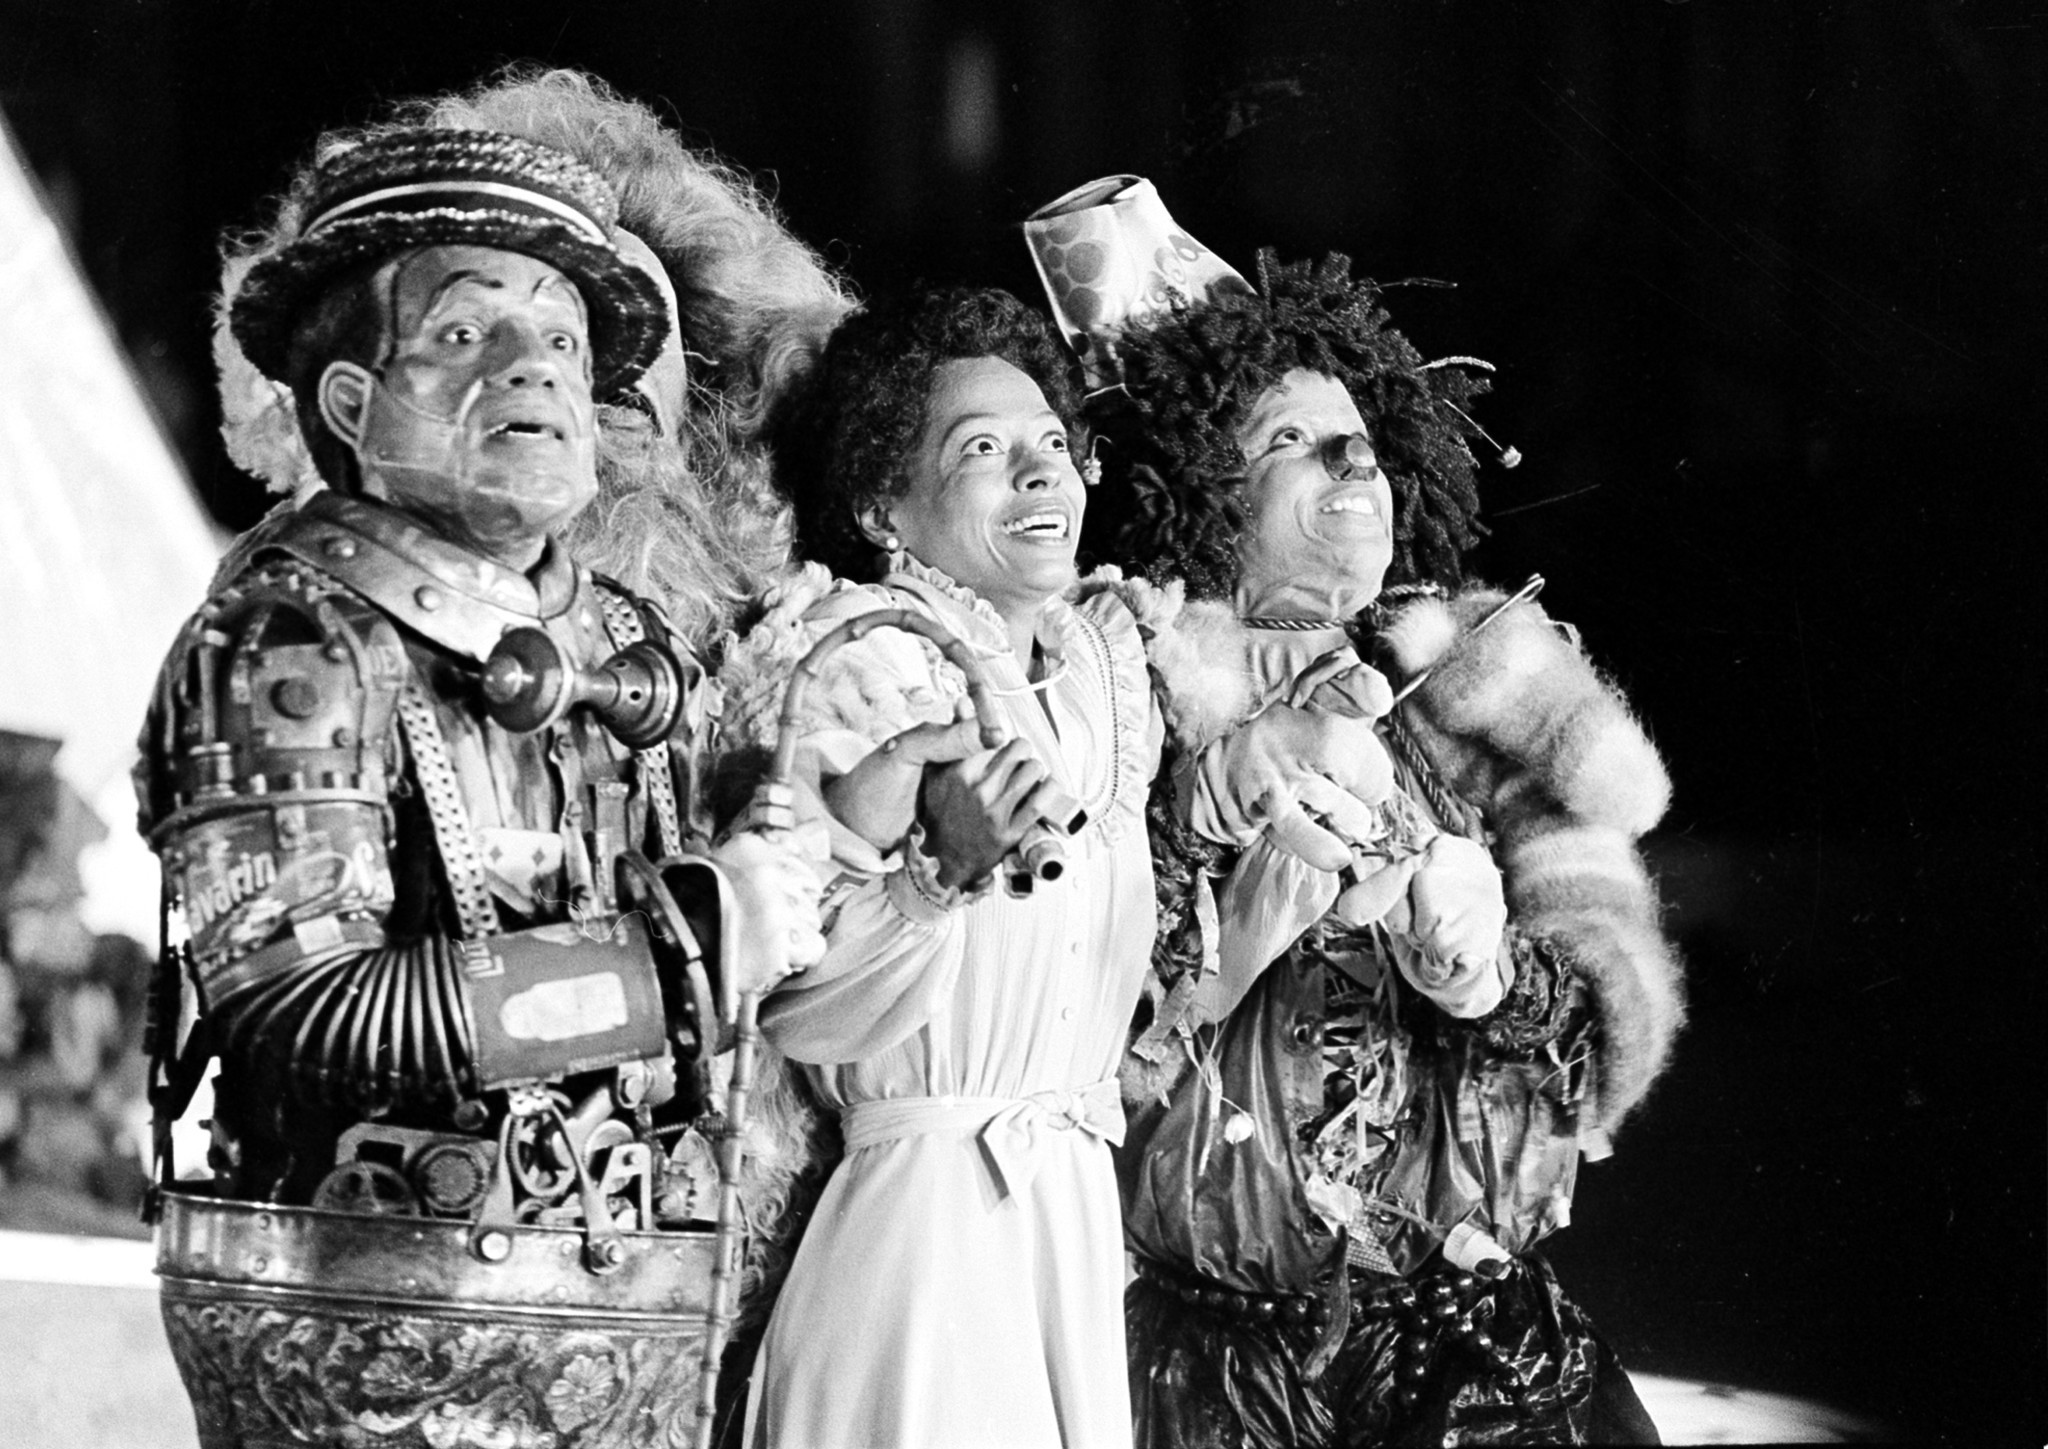 'The Wiz' slated to be NBC's